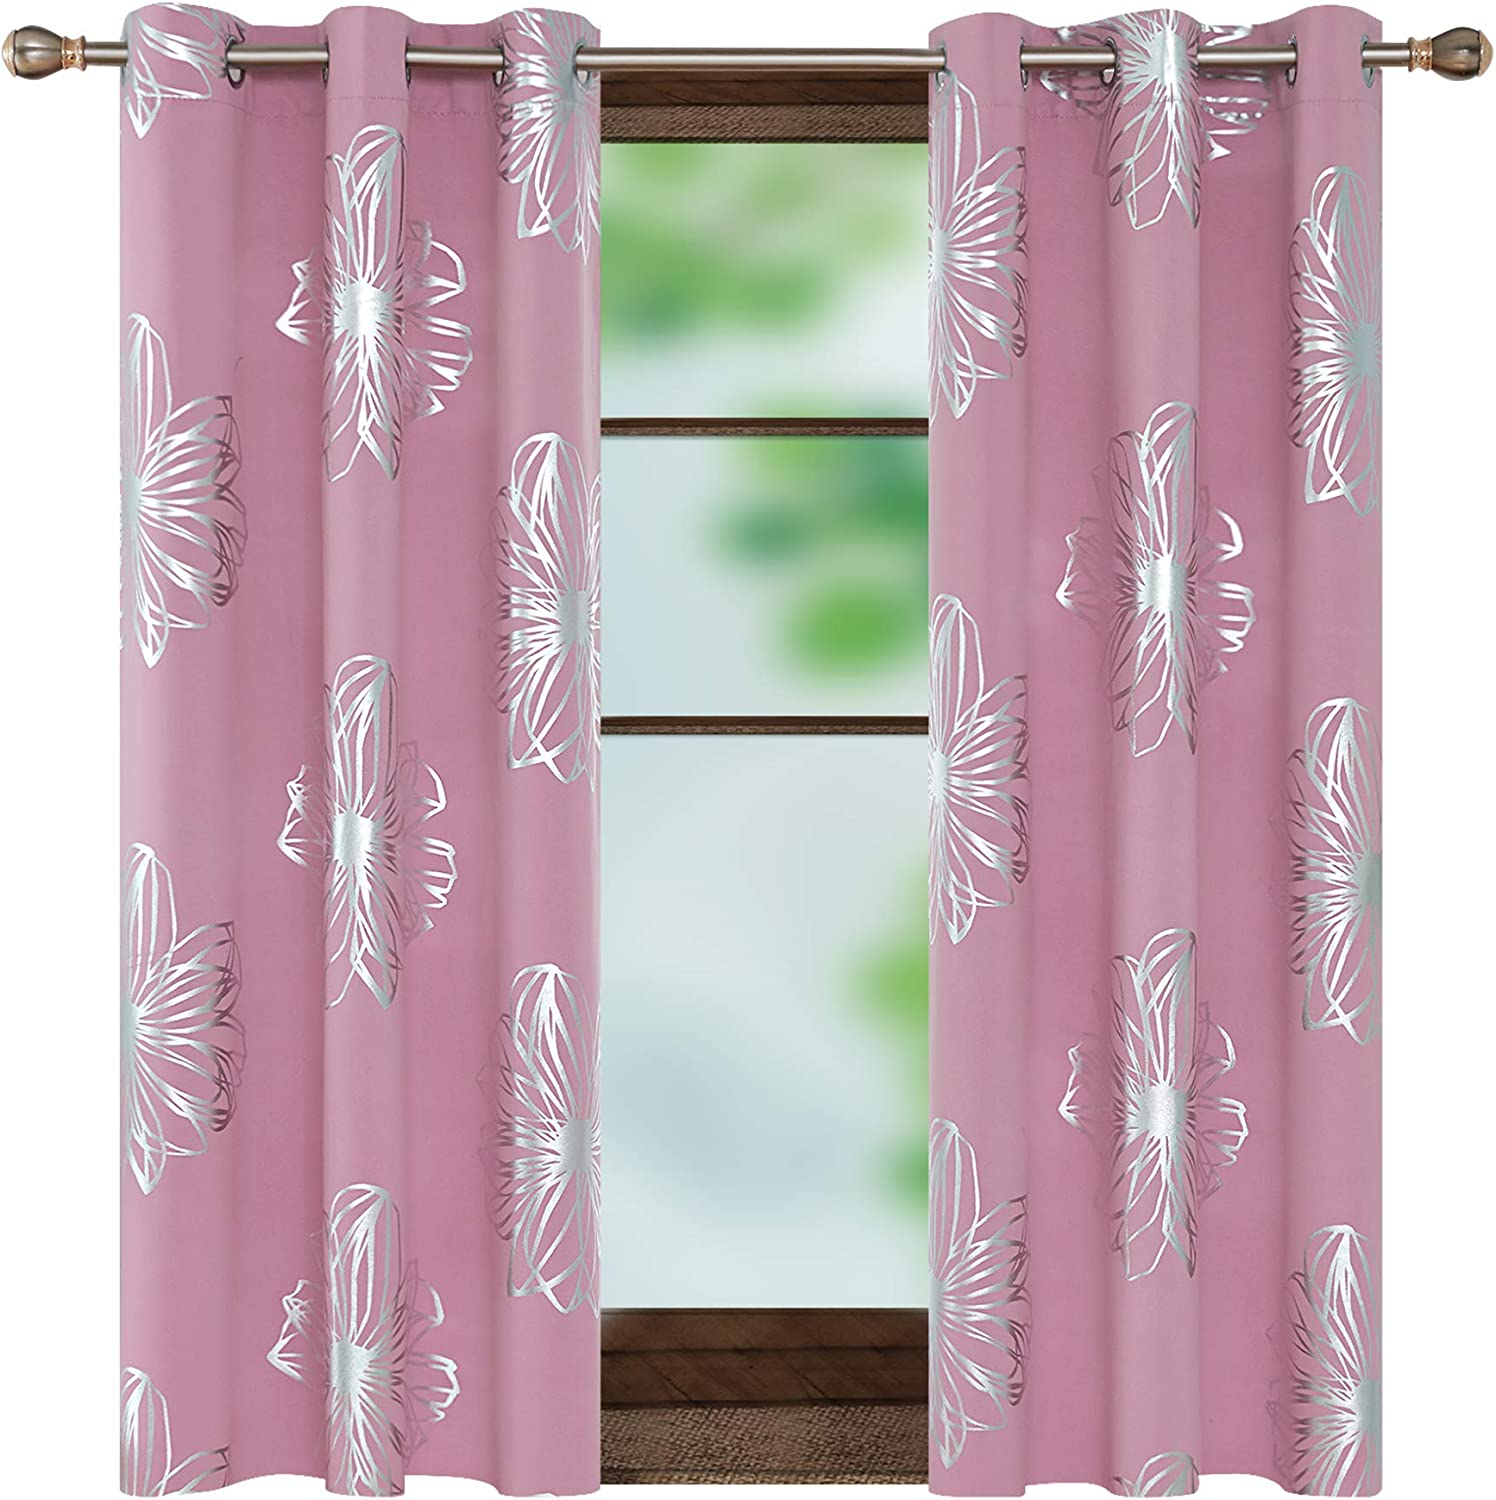 Deconovo Foil Print Floral Thermal Insulated Blackout Curtains Room Darkening Blackout Grommet Top Drapes Window Treatment for Living Room 42W x 54L Inch Pink 1 Pair Pink 42W x 54L Inch